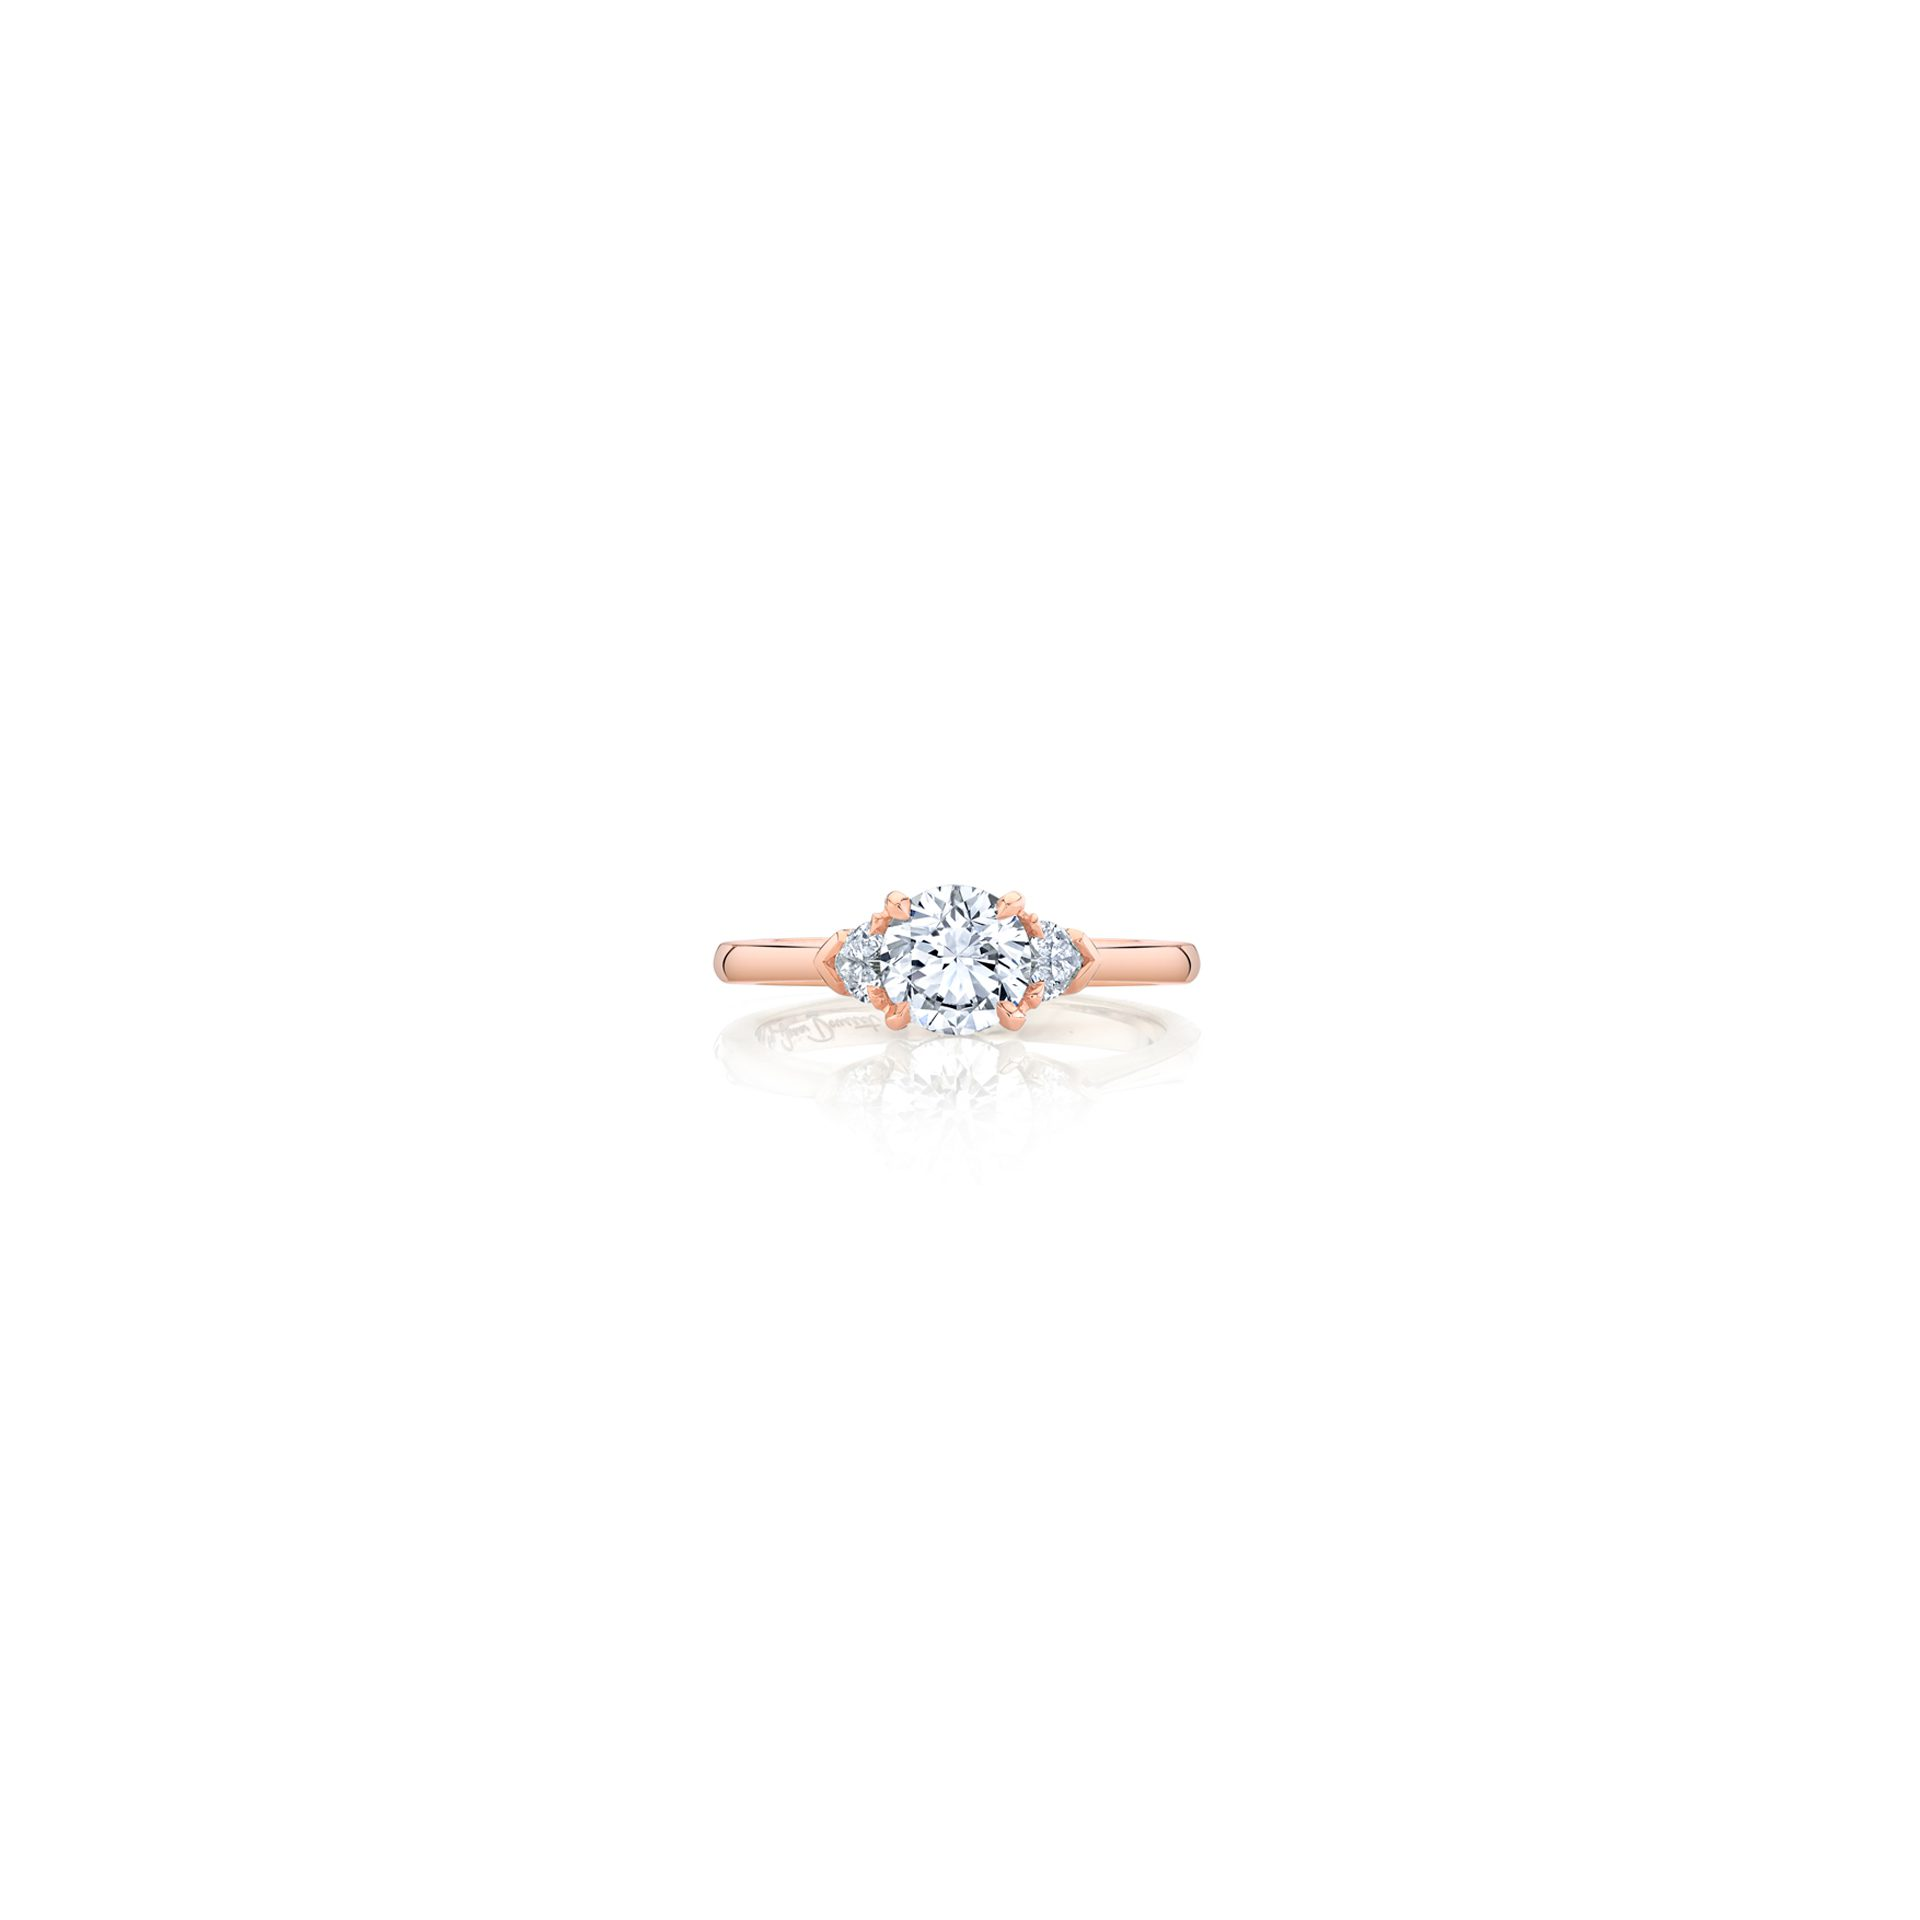 Claire Round Brilliant Three Stone Engagement Ring with heart-shaped diamond side stones in 18k Rose Gold Front View by Oui by Jean Dousset